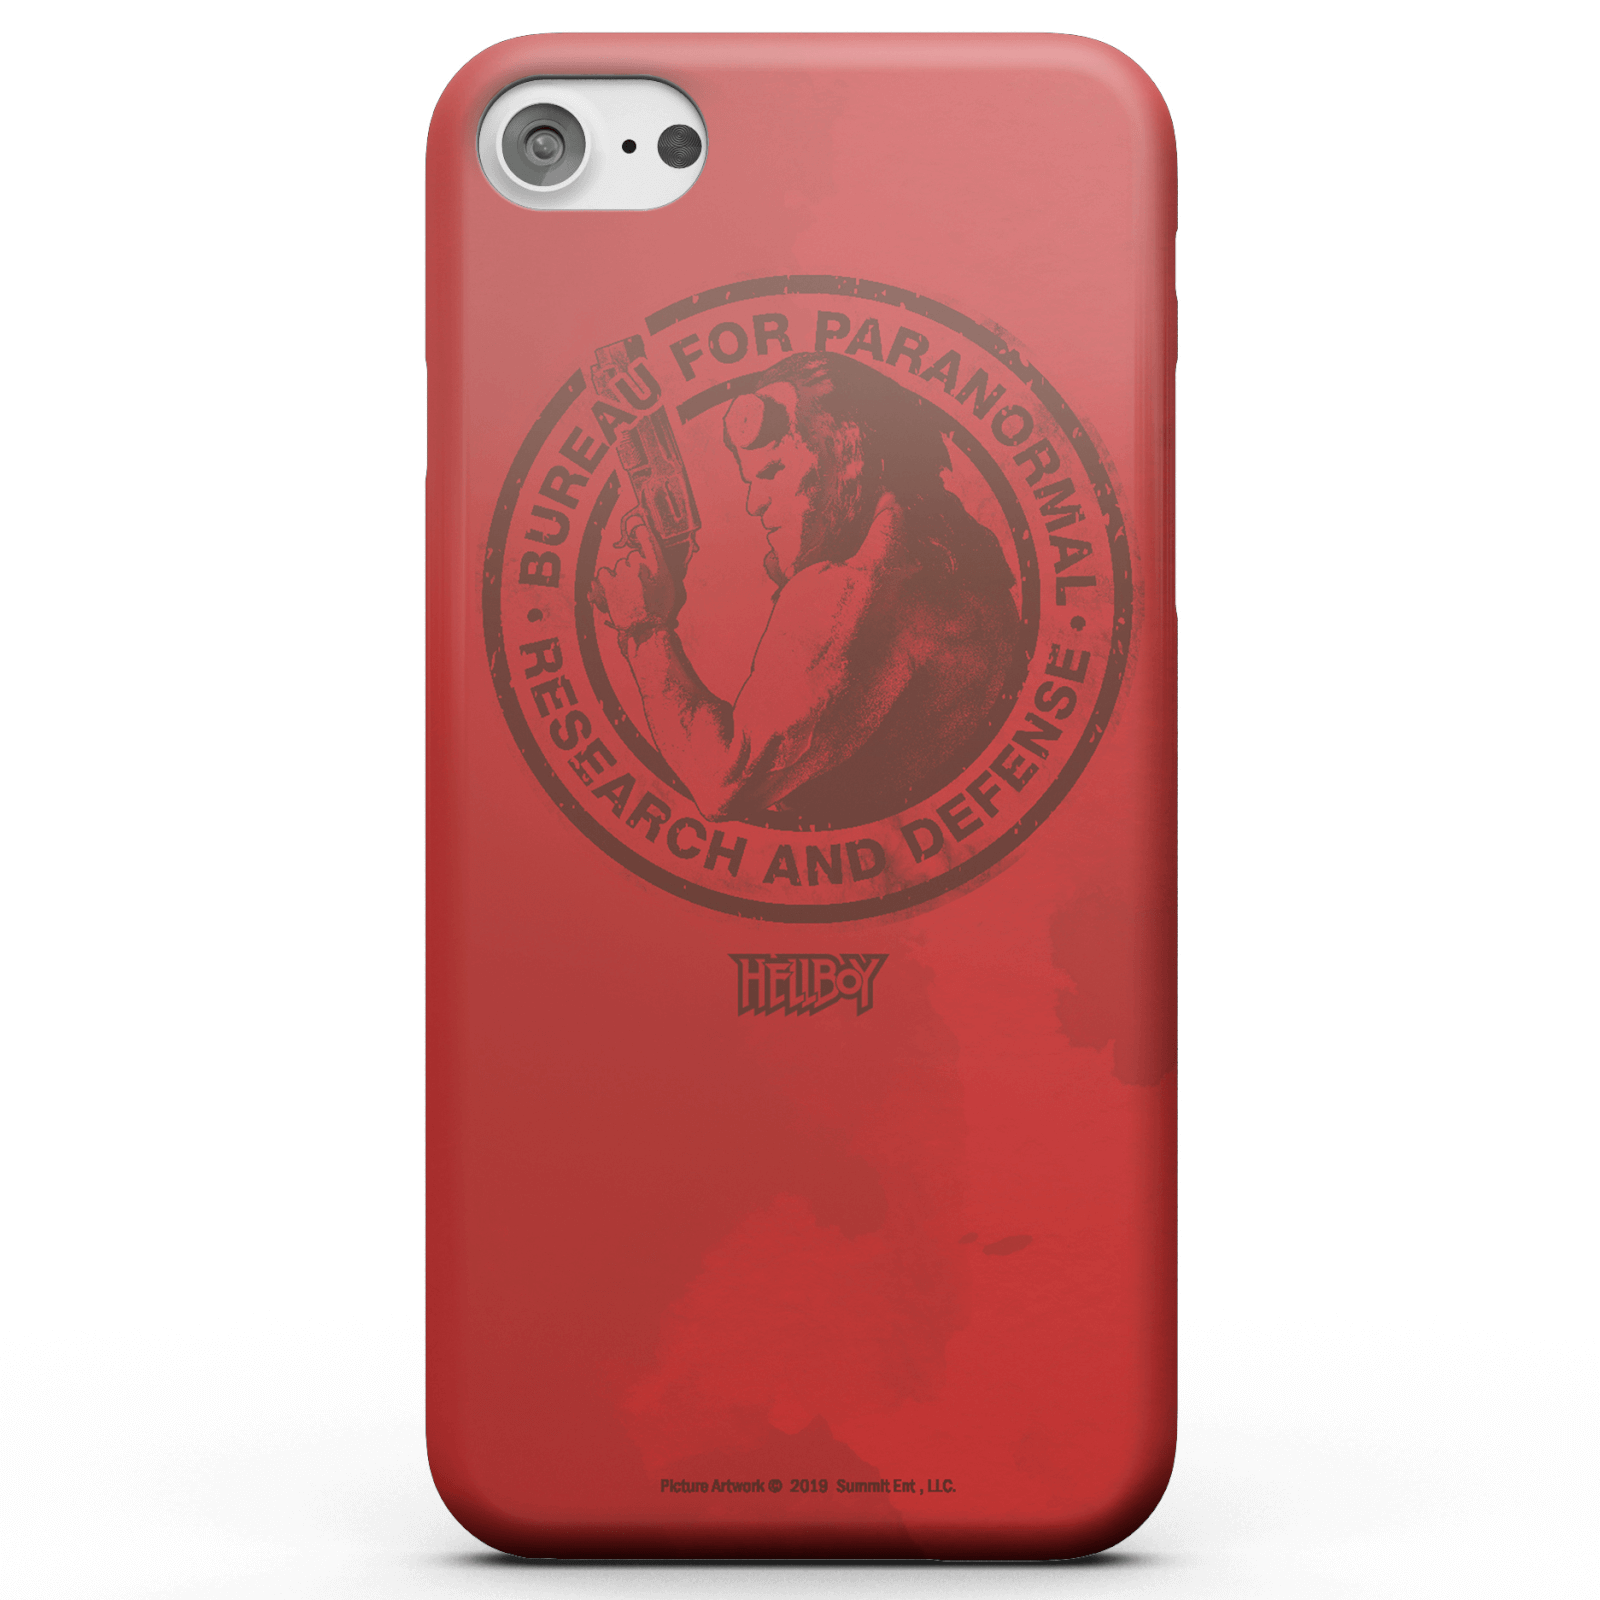 low priced 3974a 44b9f Hellboy B.P.R.D. Hero Phone Case for iPhone and Android